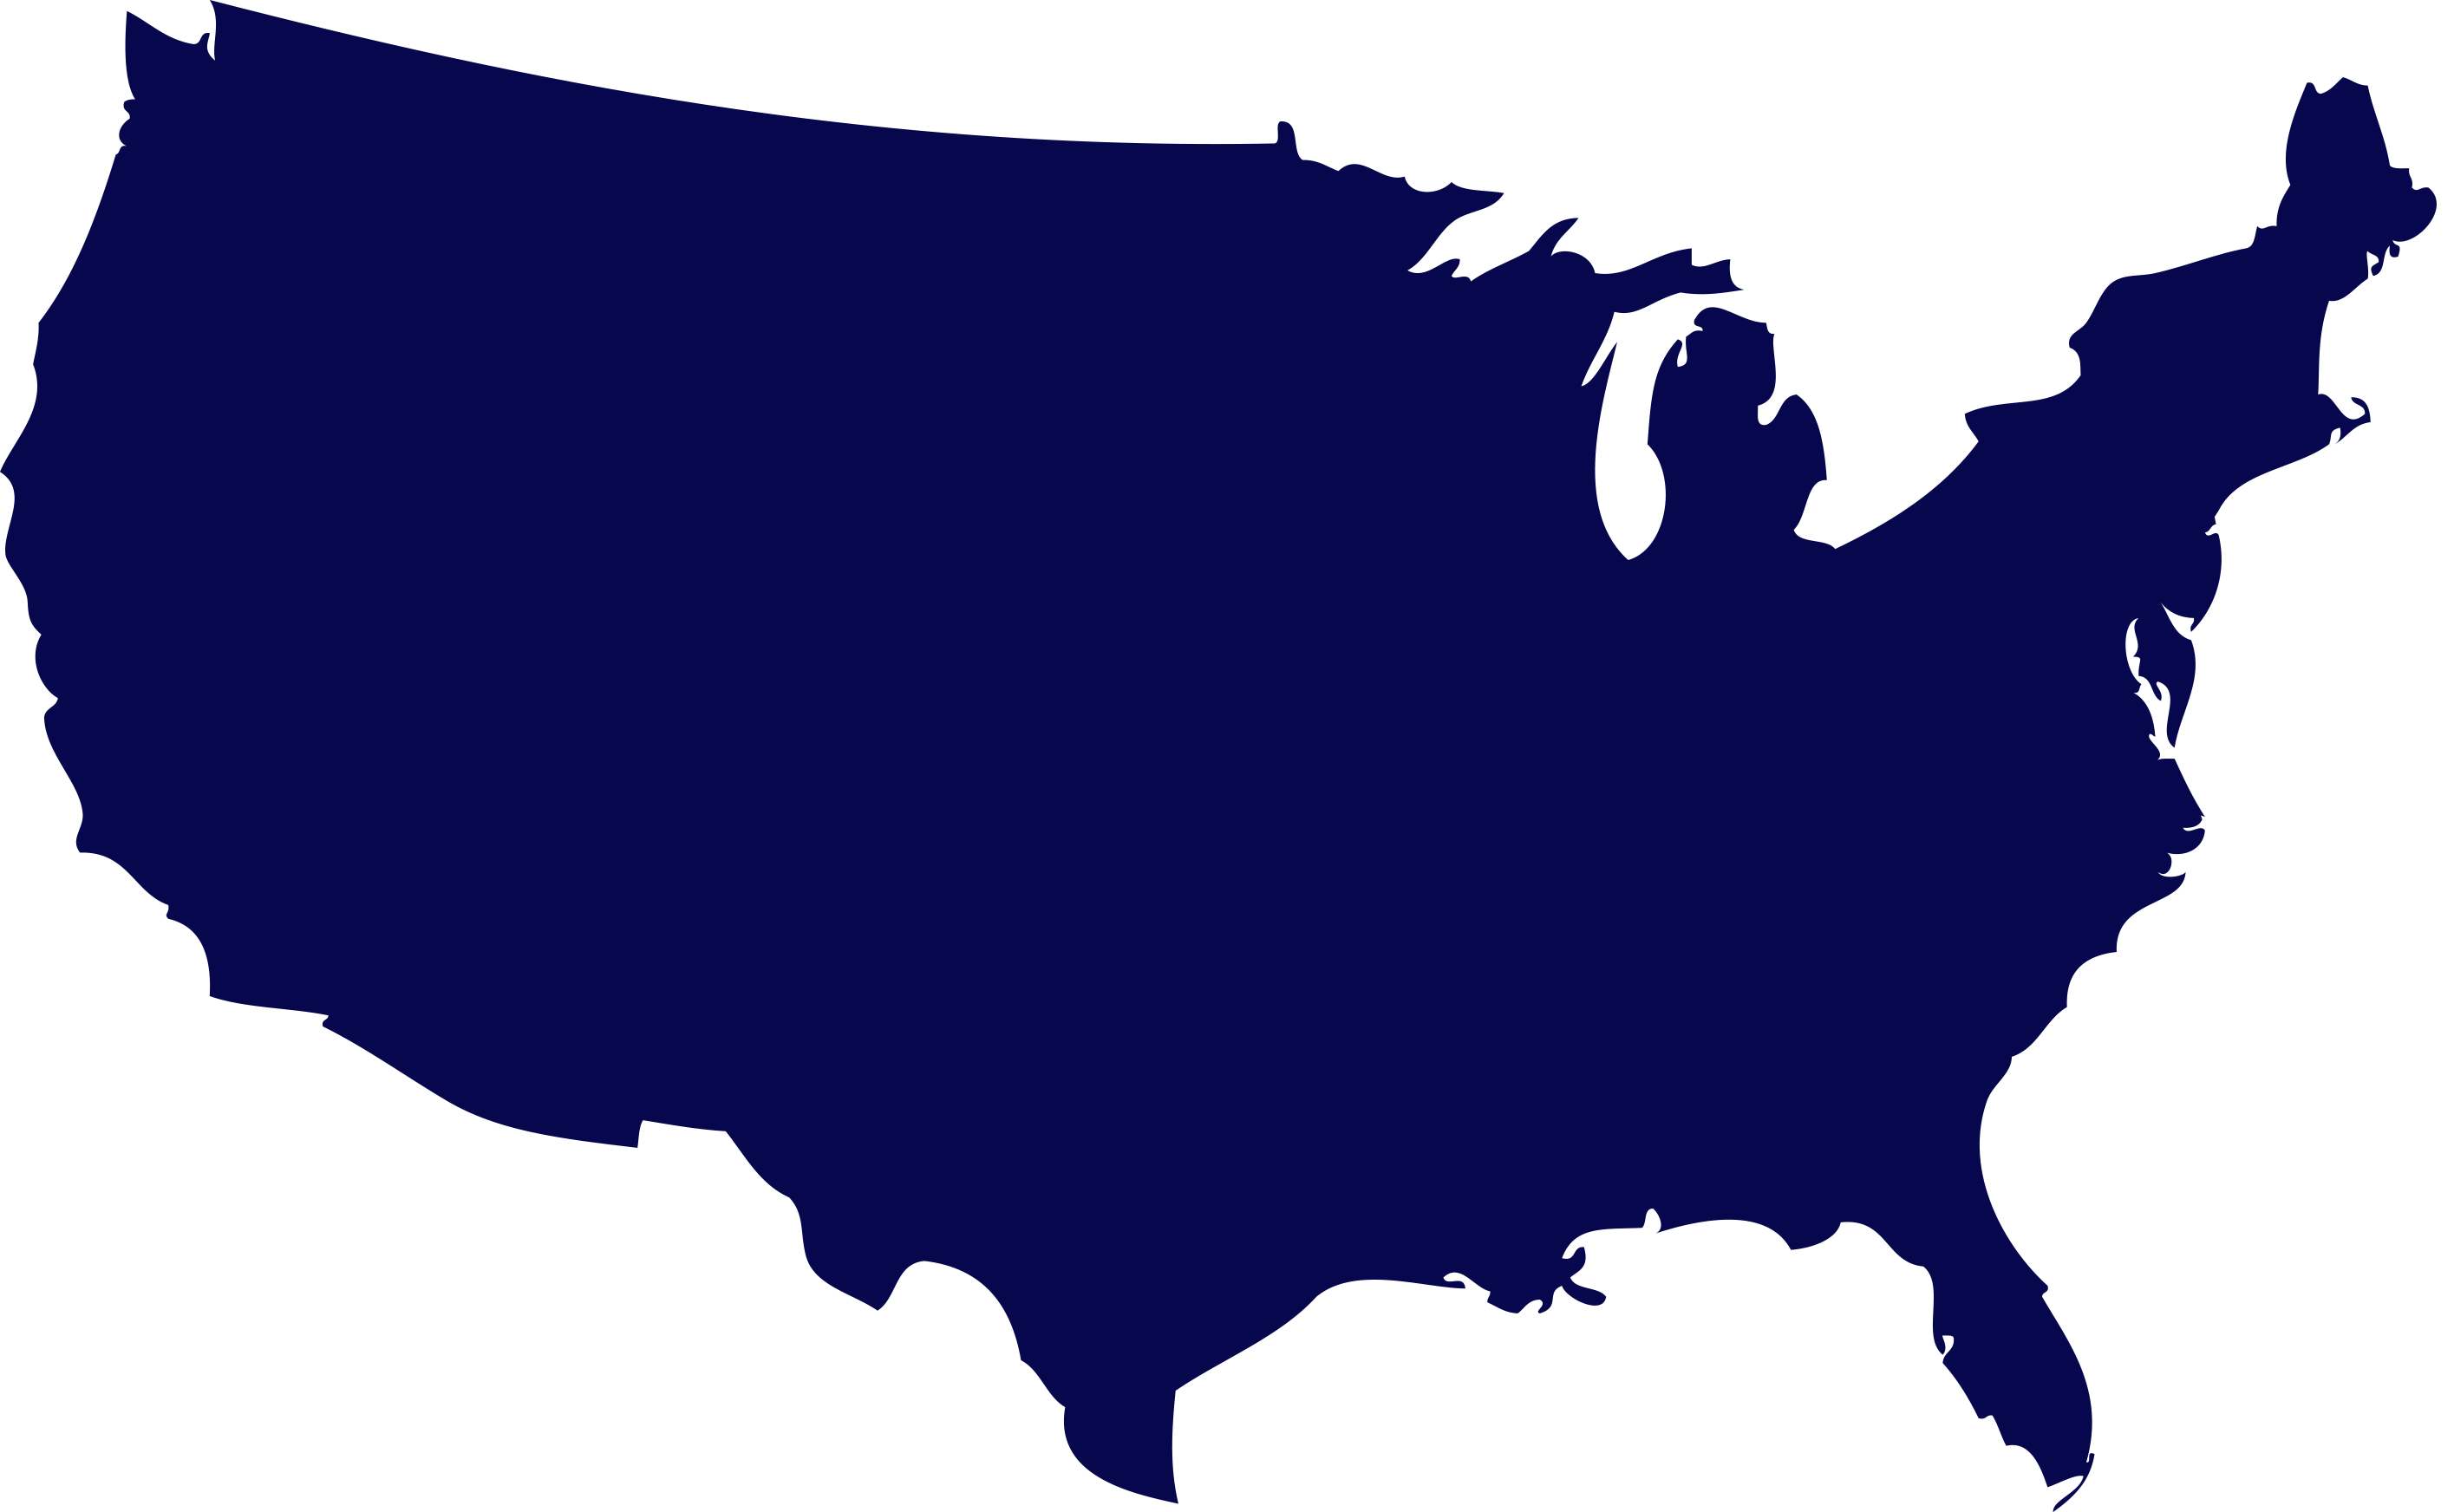 us_map_silhouette1